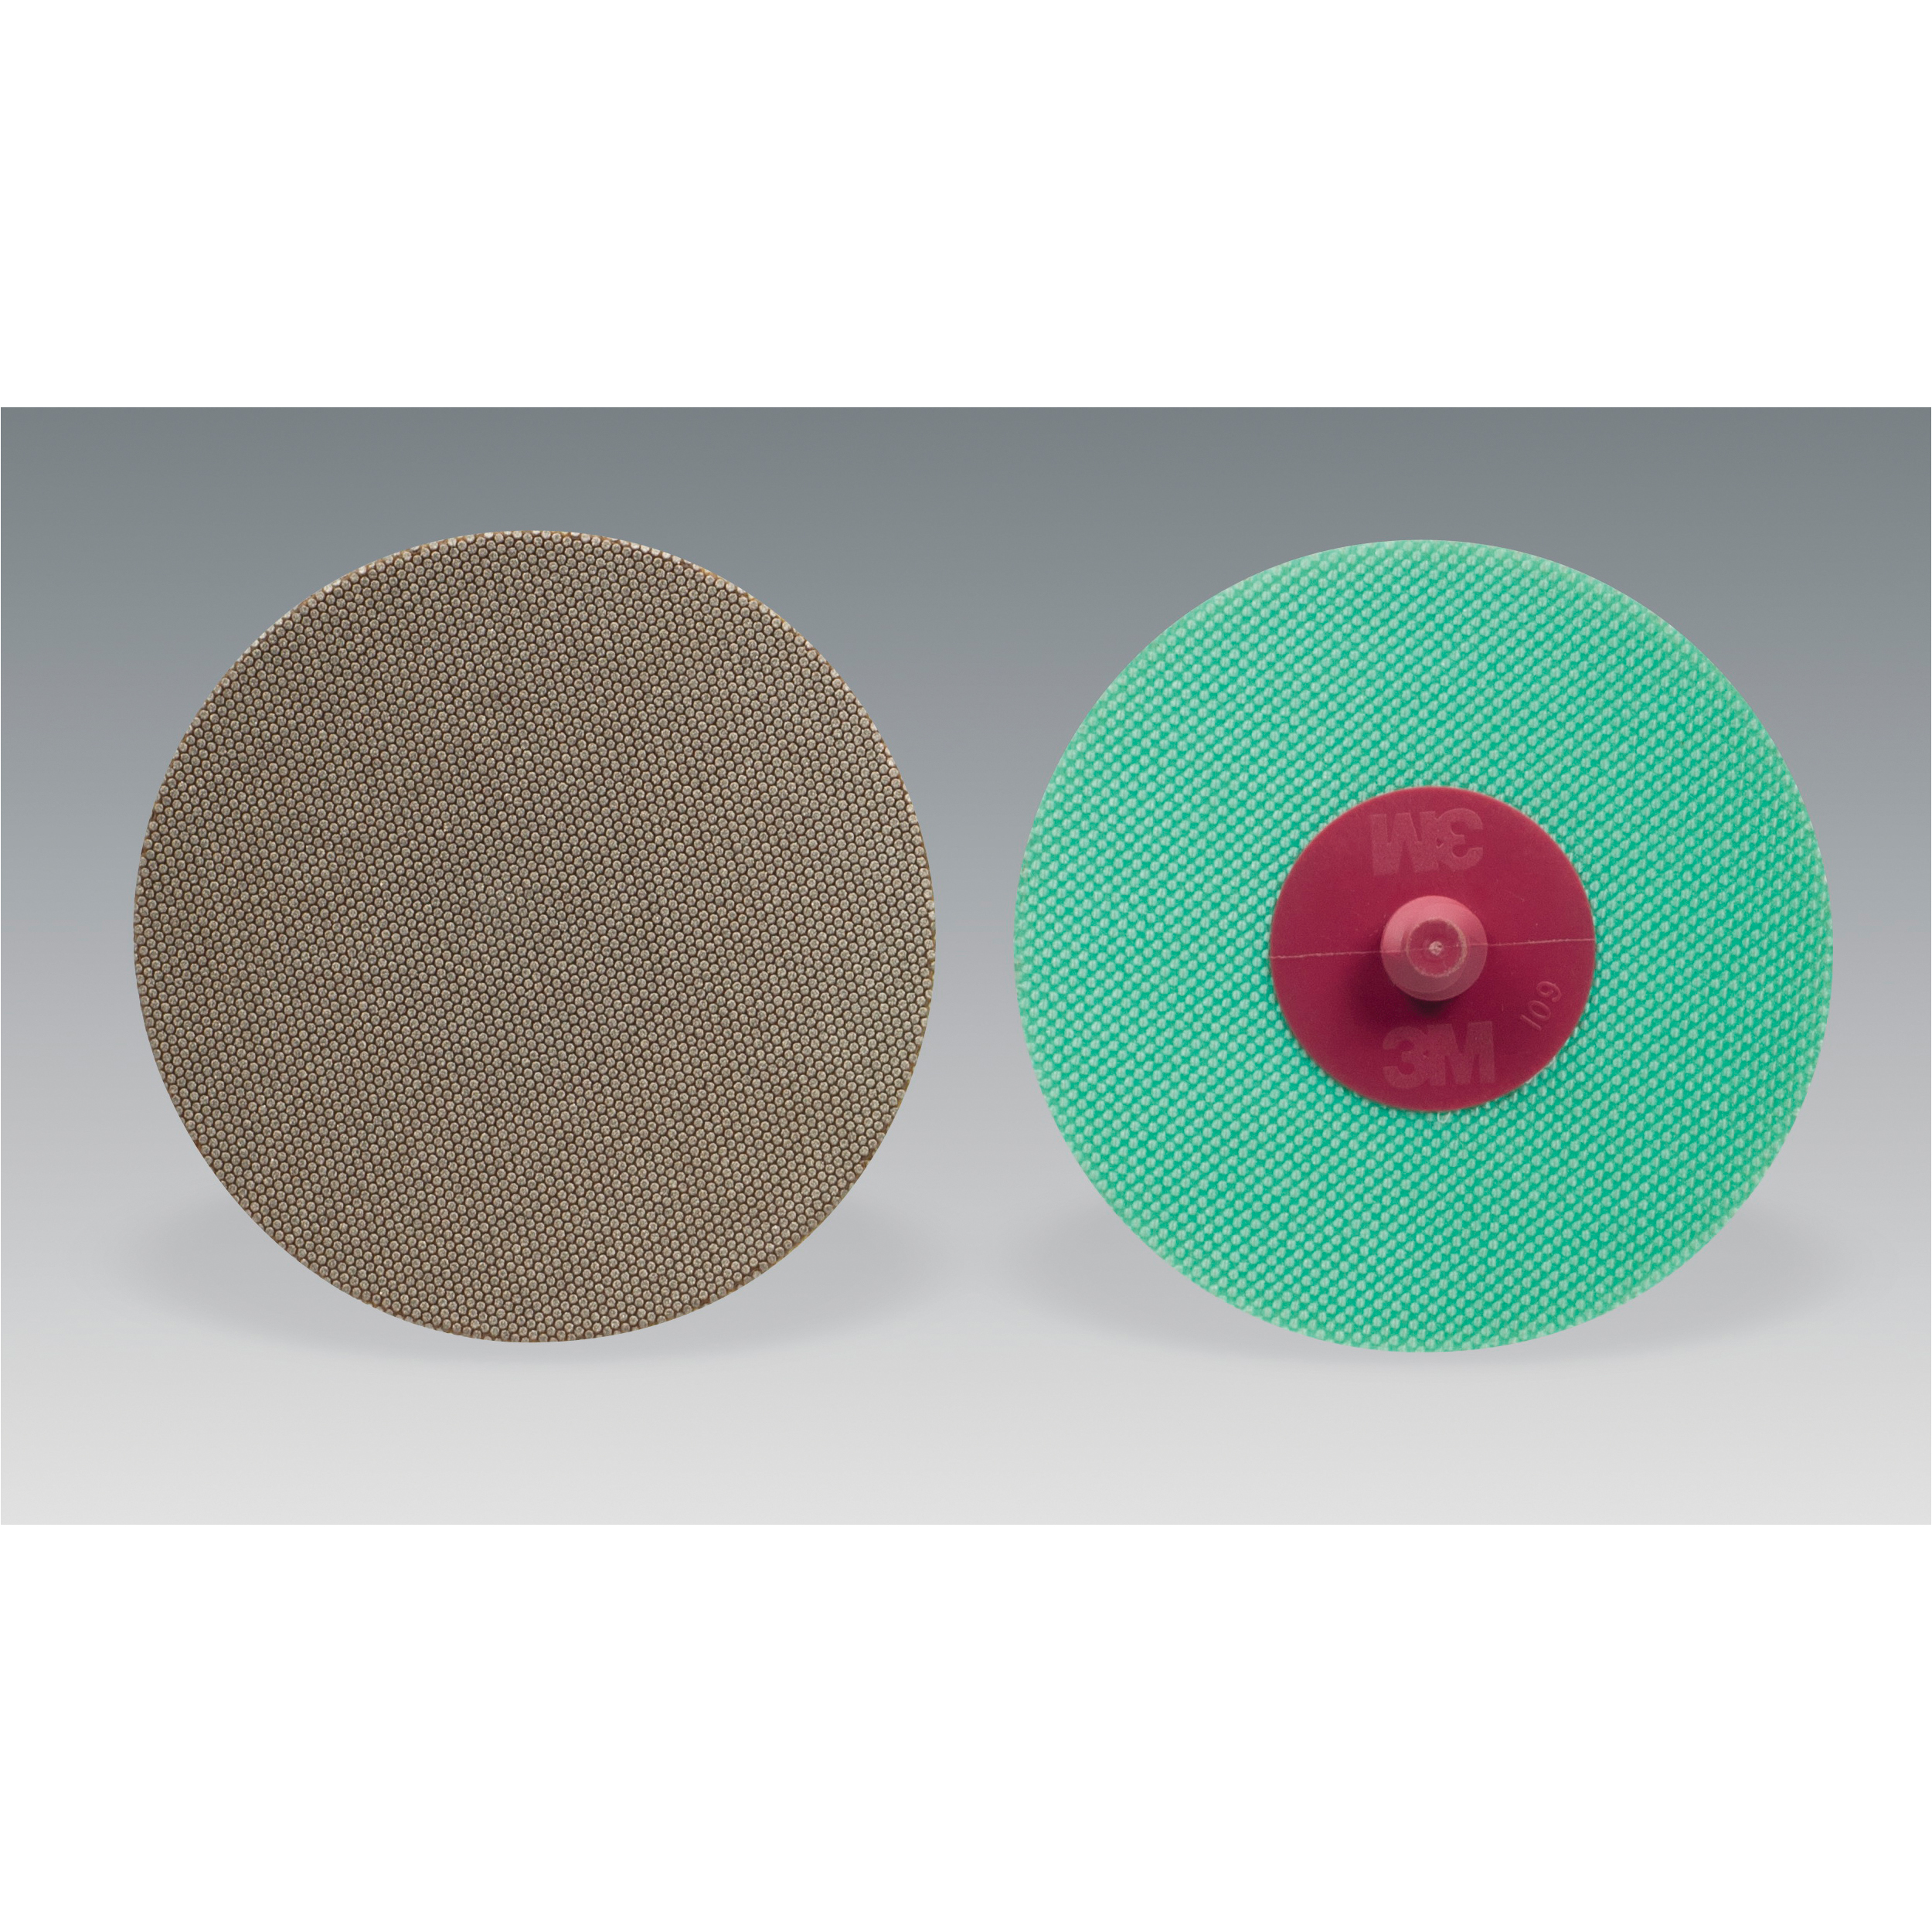 Roloc™ 051144-85257 6234J Type TR Flexible Abrasive Disc, 3 in Dia, No Hole Arbor/Shank, 40 micron Grit, Fine Grade, Diamond Abrasive